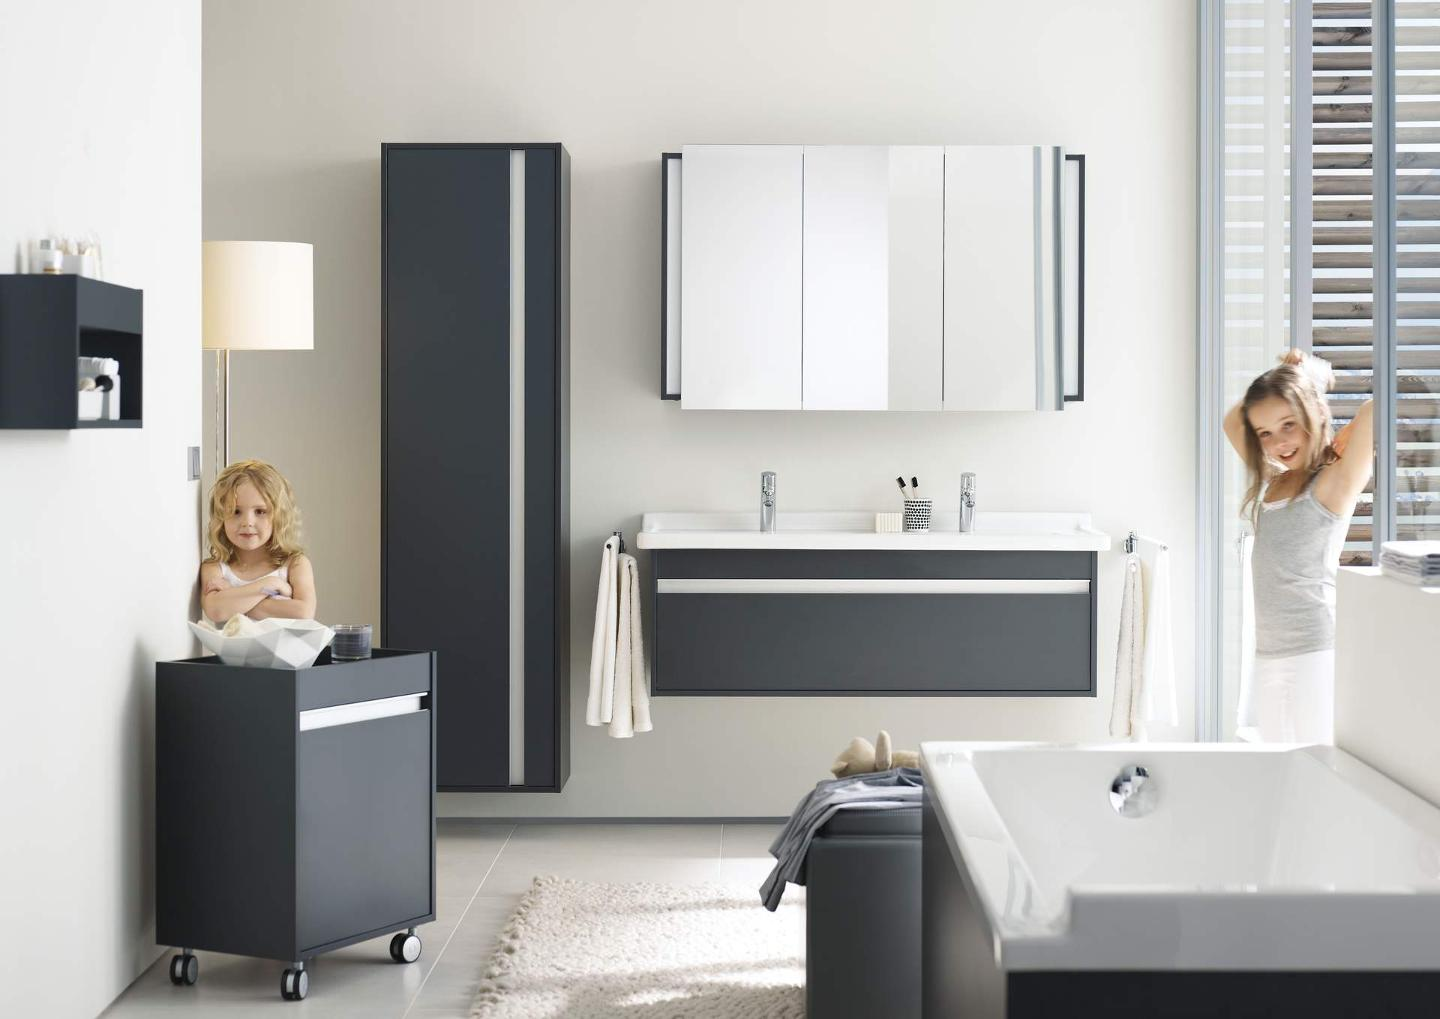 duravit cabinets bathrooms duravit ketho bathroom furniture by christian werner 12751